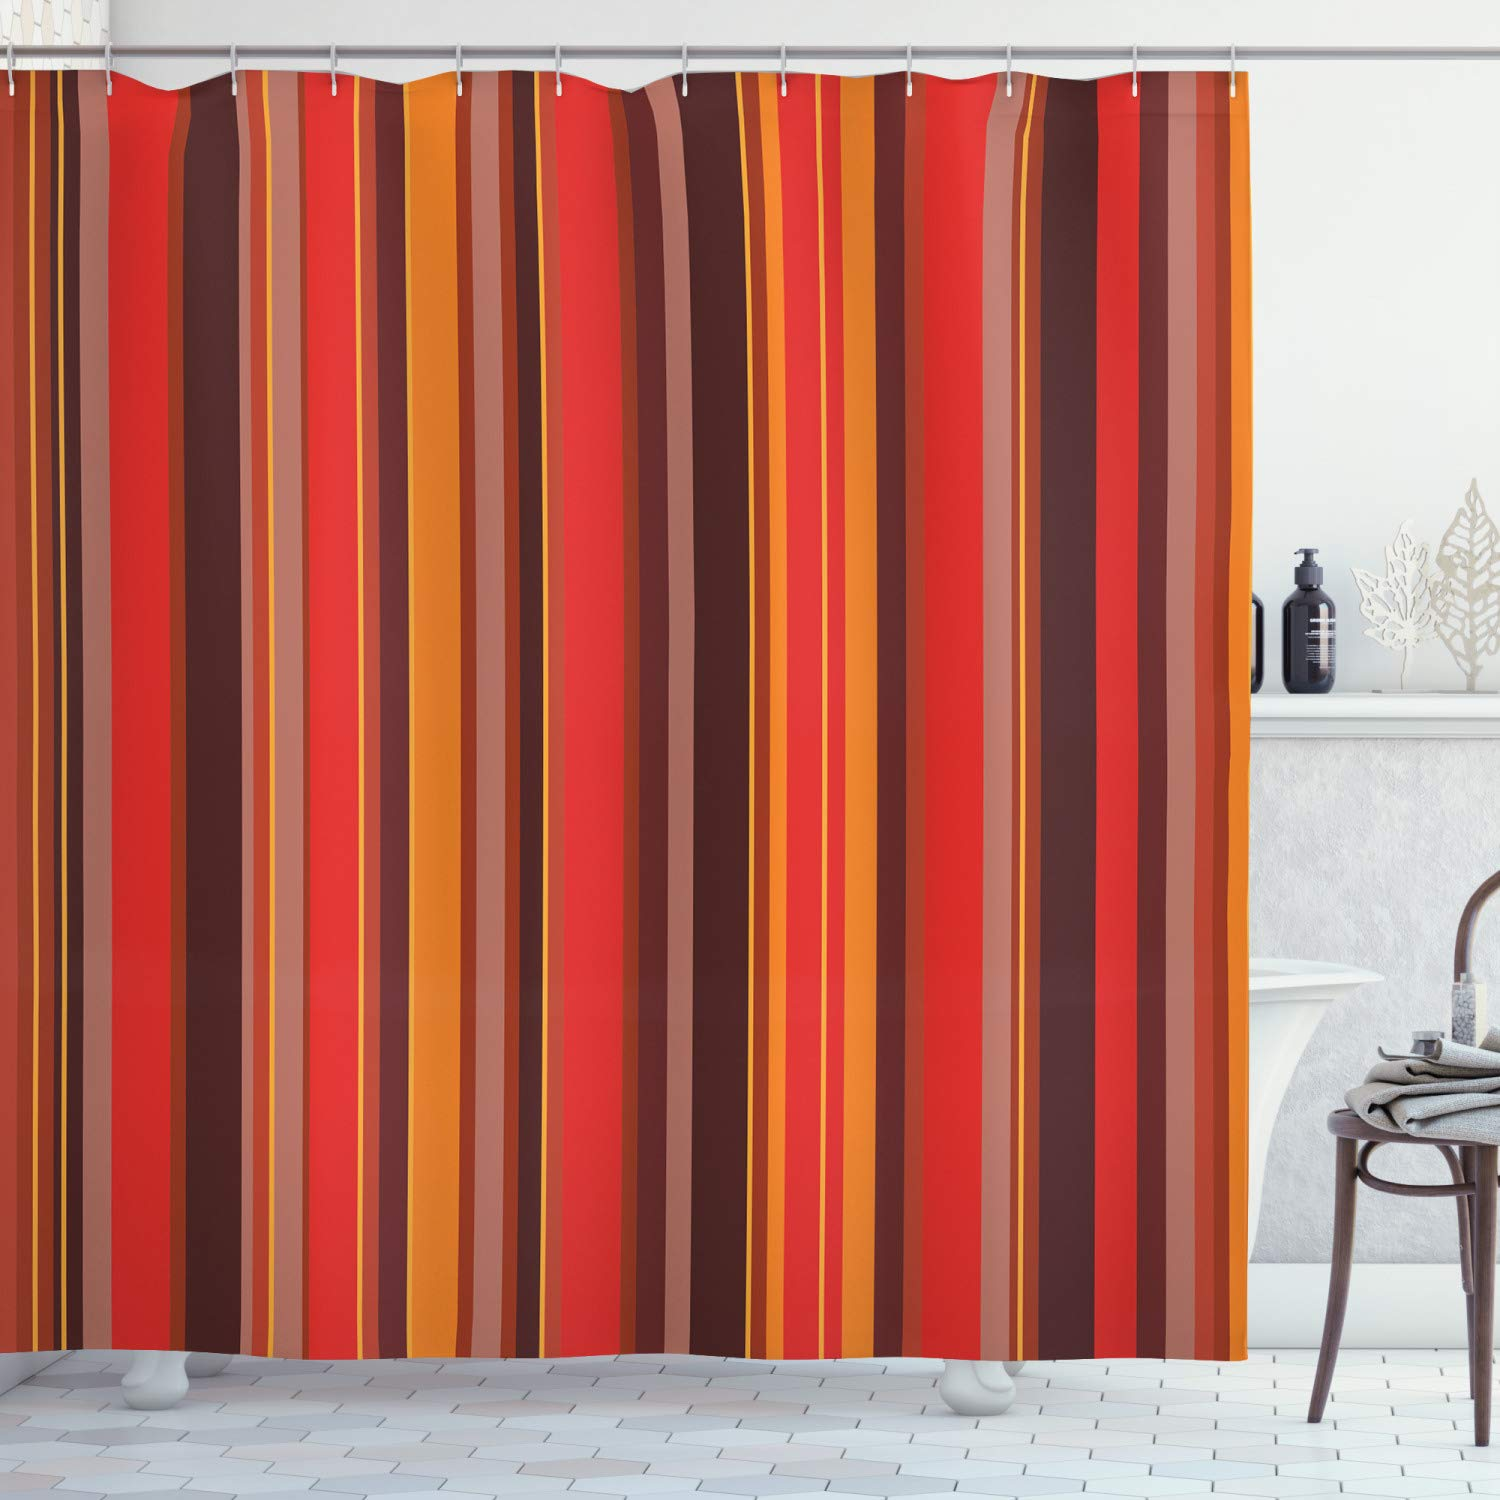 Multicolor Lunarable Striped Shower Curtain 84 Inches Extra Long Colorful Vertical Stripes Geometric Arrangement Abstract Ornamental Line Desgin Fabric Bathroom Decor Set with Hooks